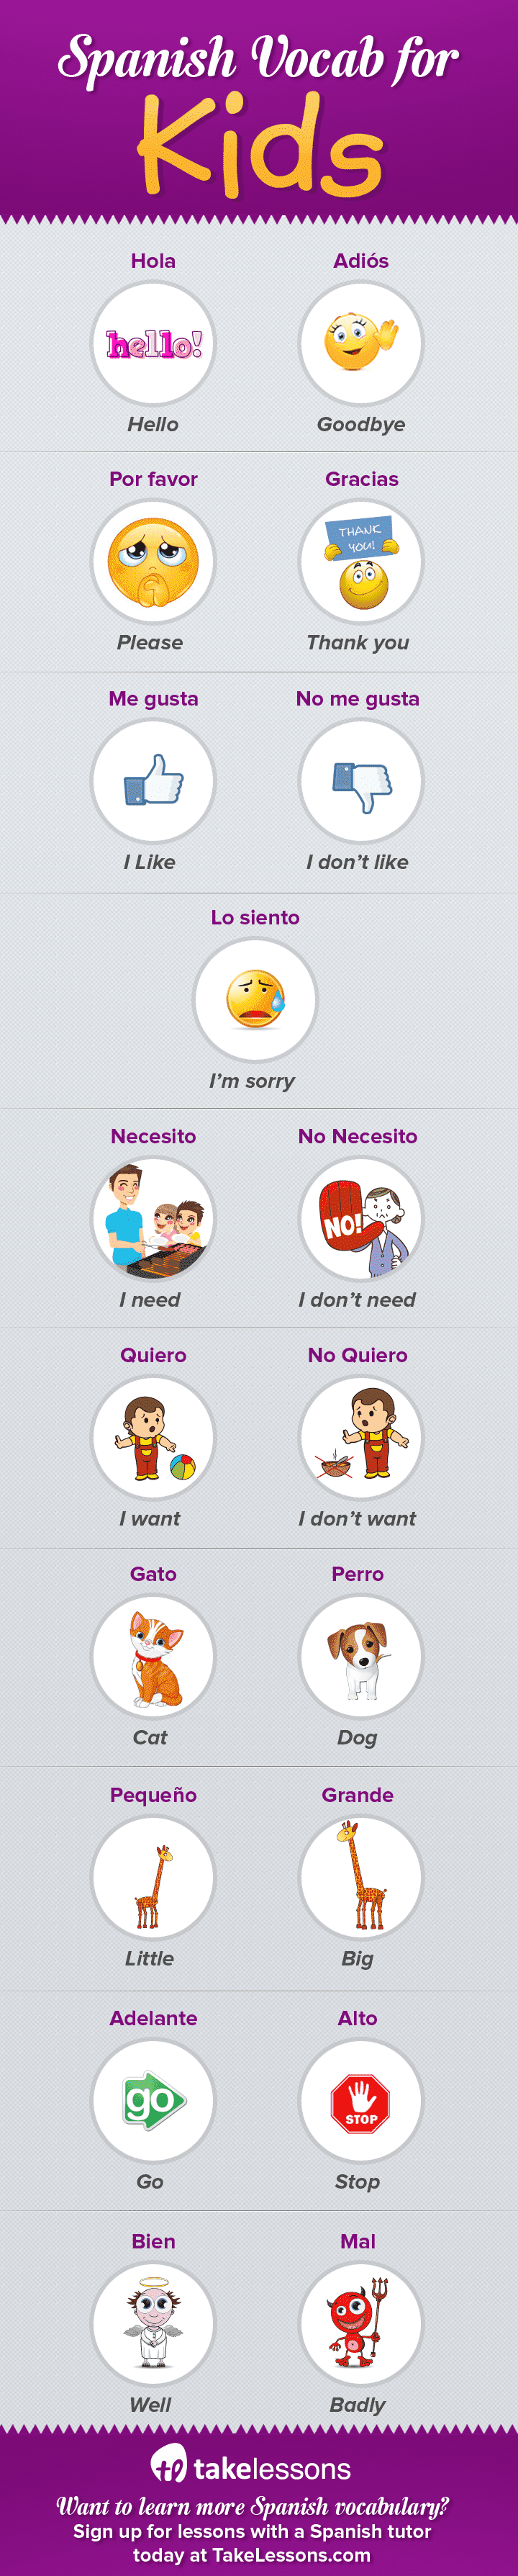 19 Easy Spanish Vocabulary Words to Teach Your Kids